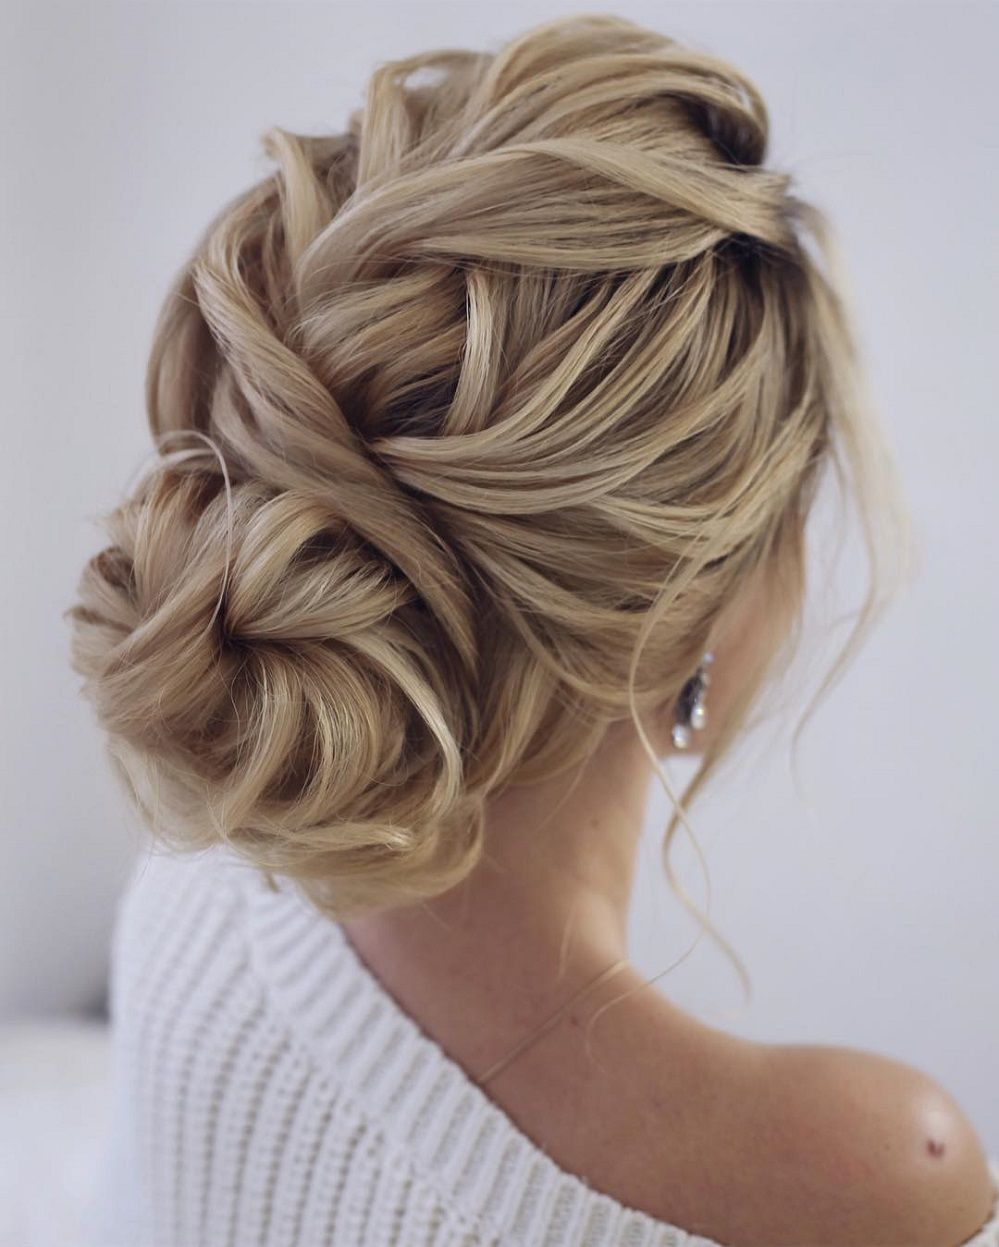 Gorgeous Super Chic Hairstyles That S Breathtaking Chic Hairstyles Hair Styles Wedding Hair Inspiration